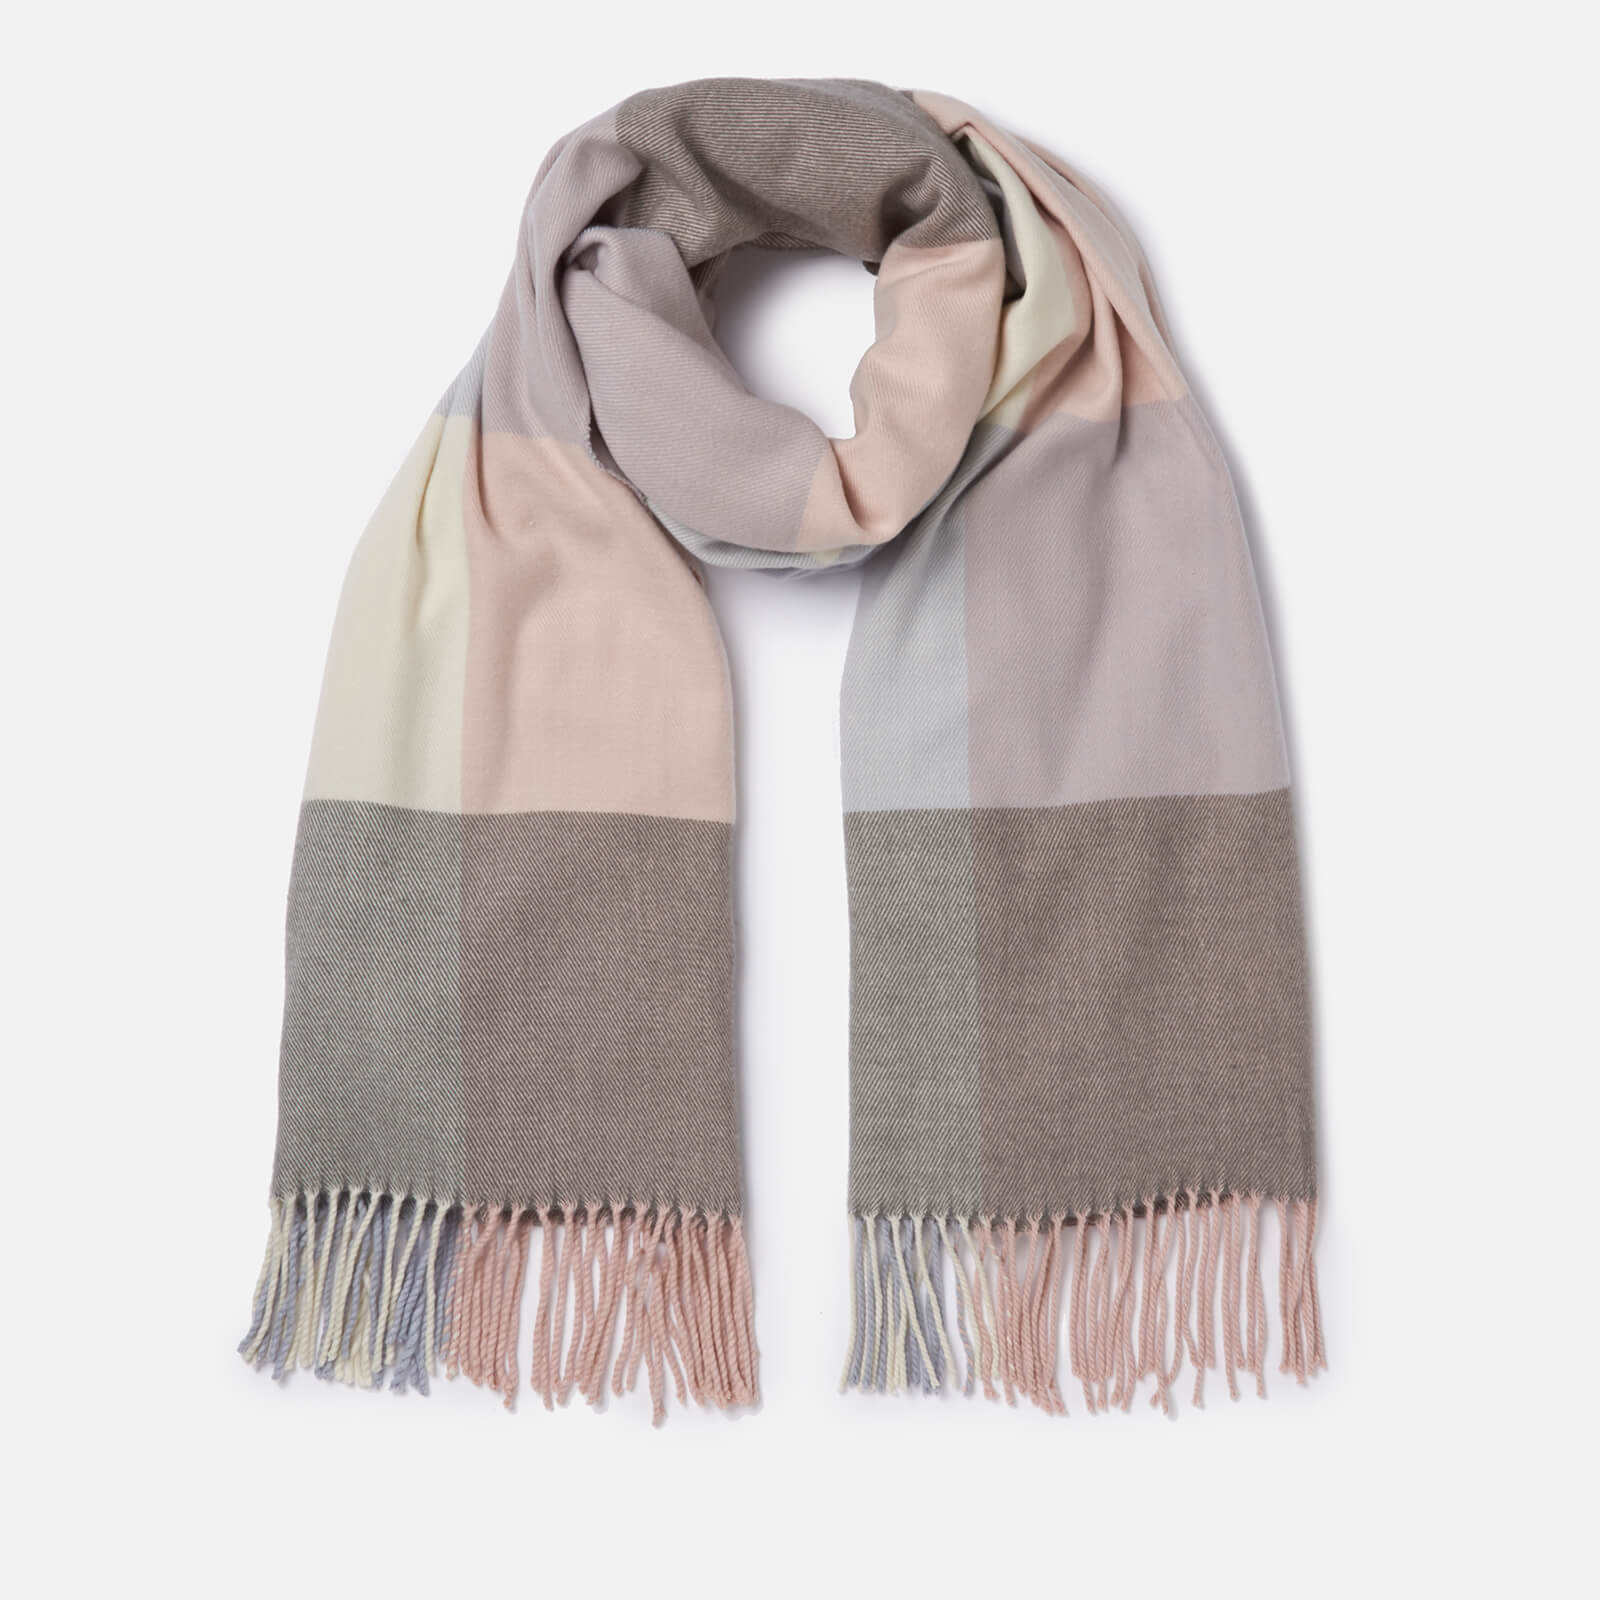 185e7a1182fcc Barbour Women's Pastel Check Scarf - Blue/Pink/Grey